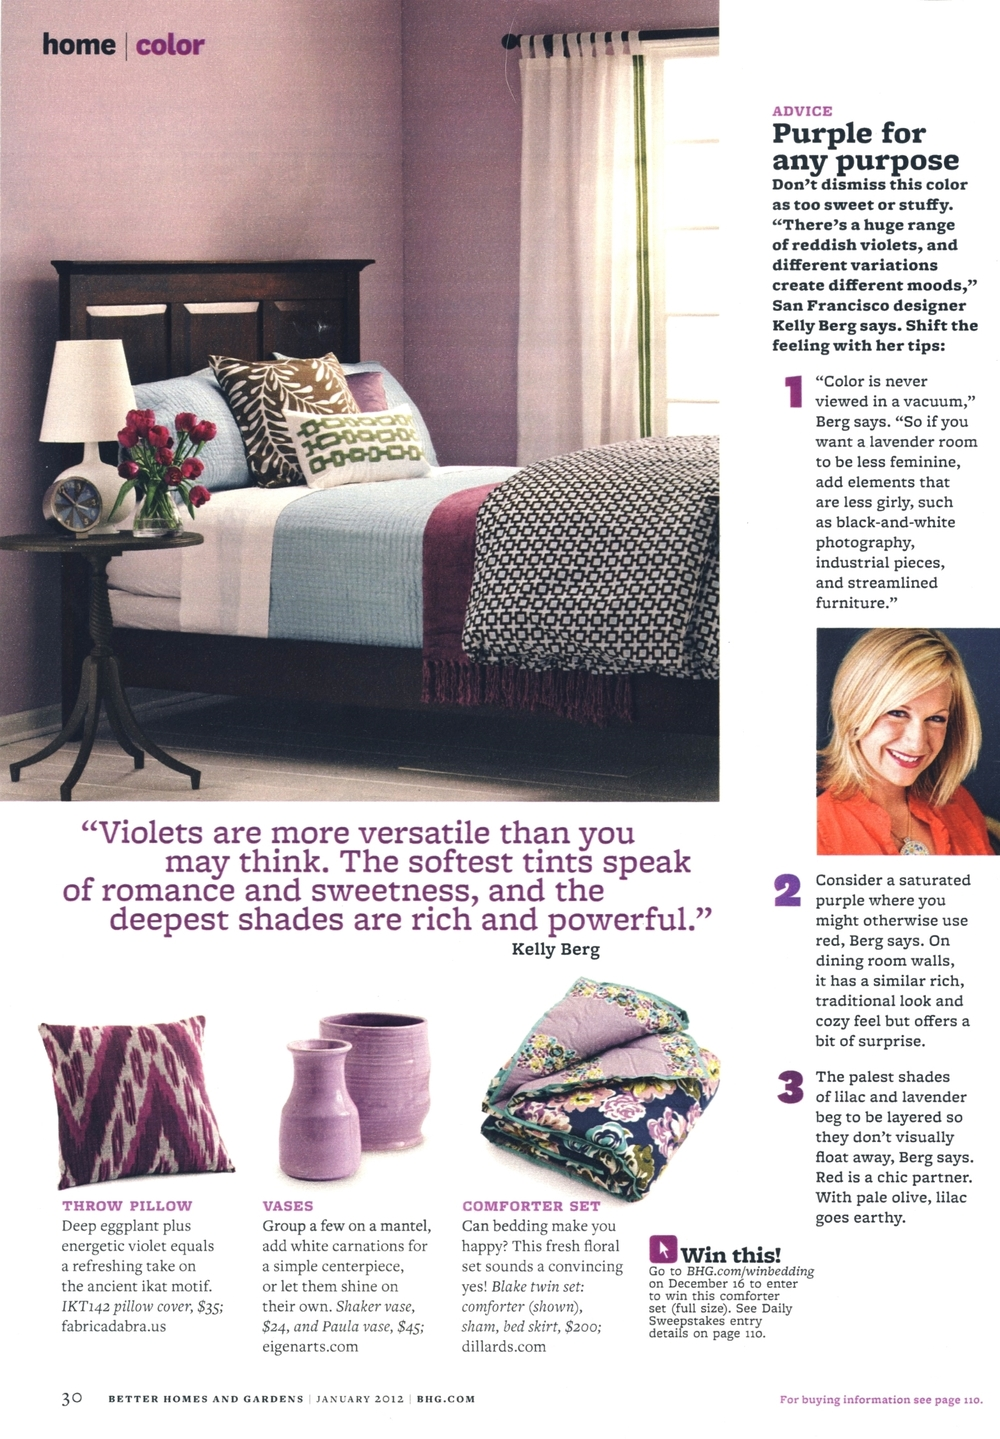 bhg jan 2012 pg 2.jpeg